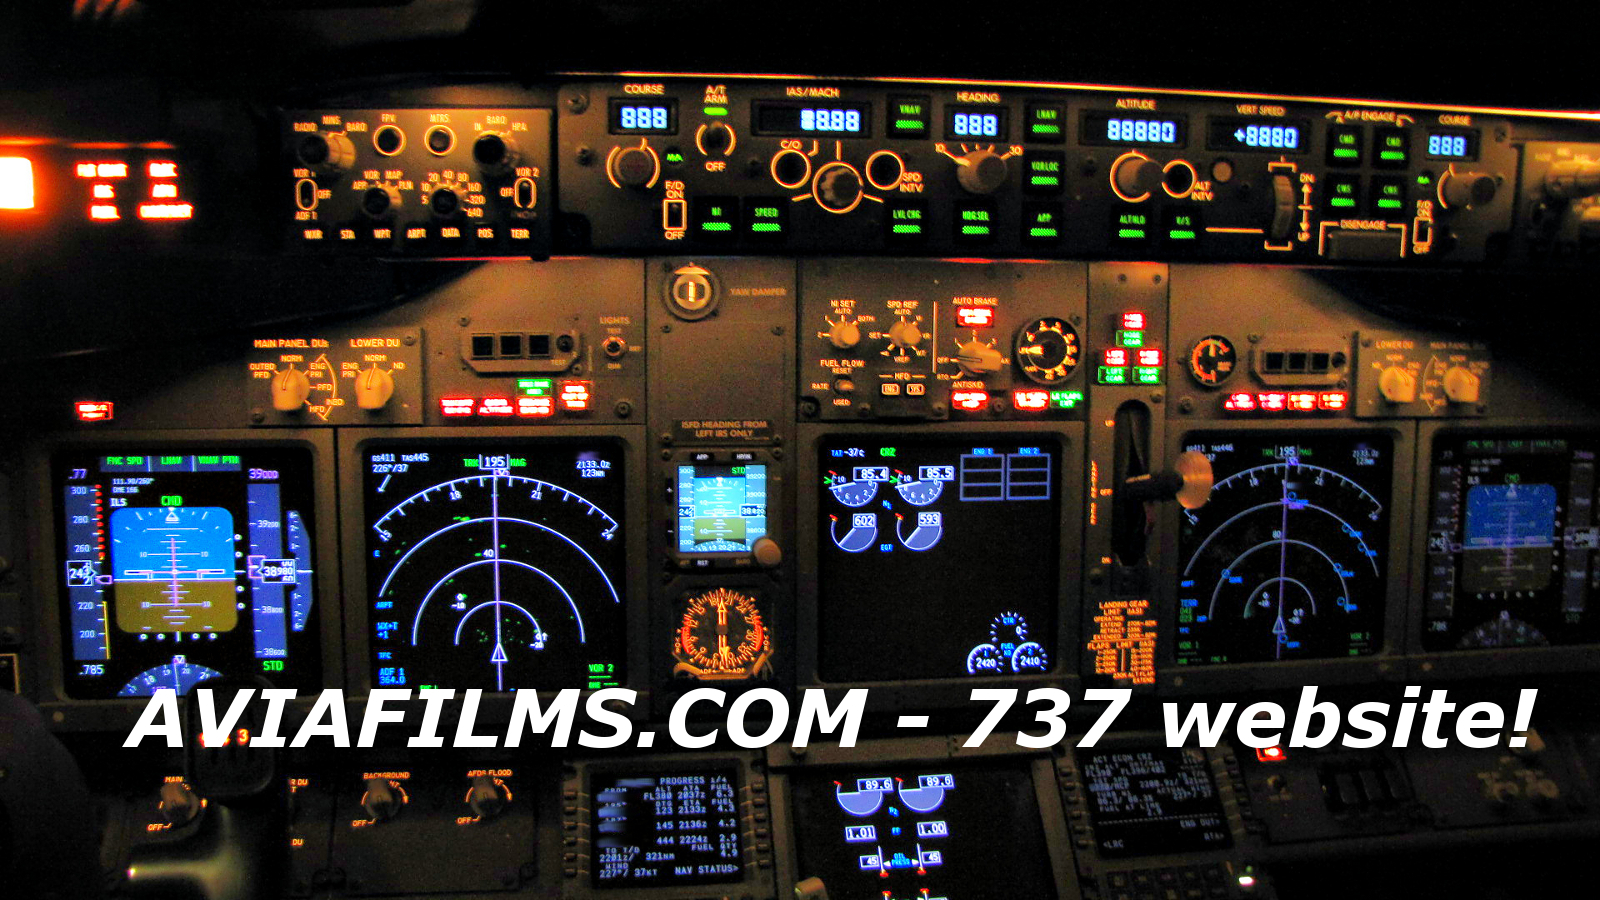 737 800 Cockpit Wallpaper Wallpapersafari